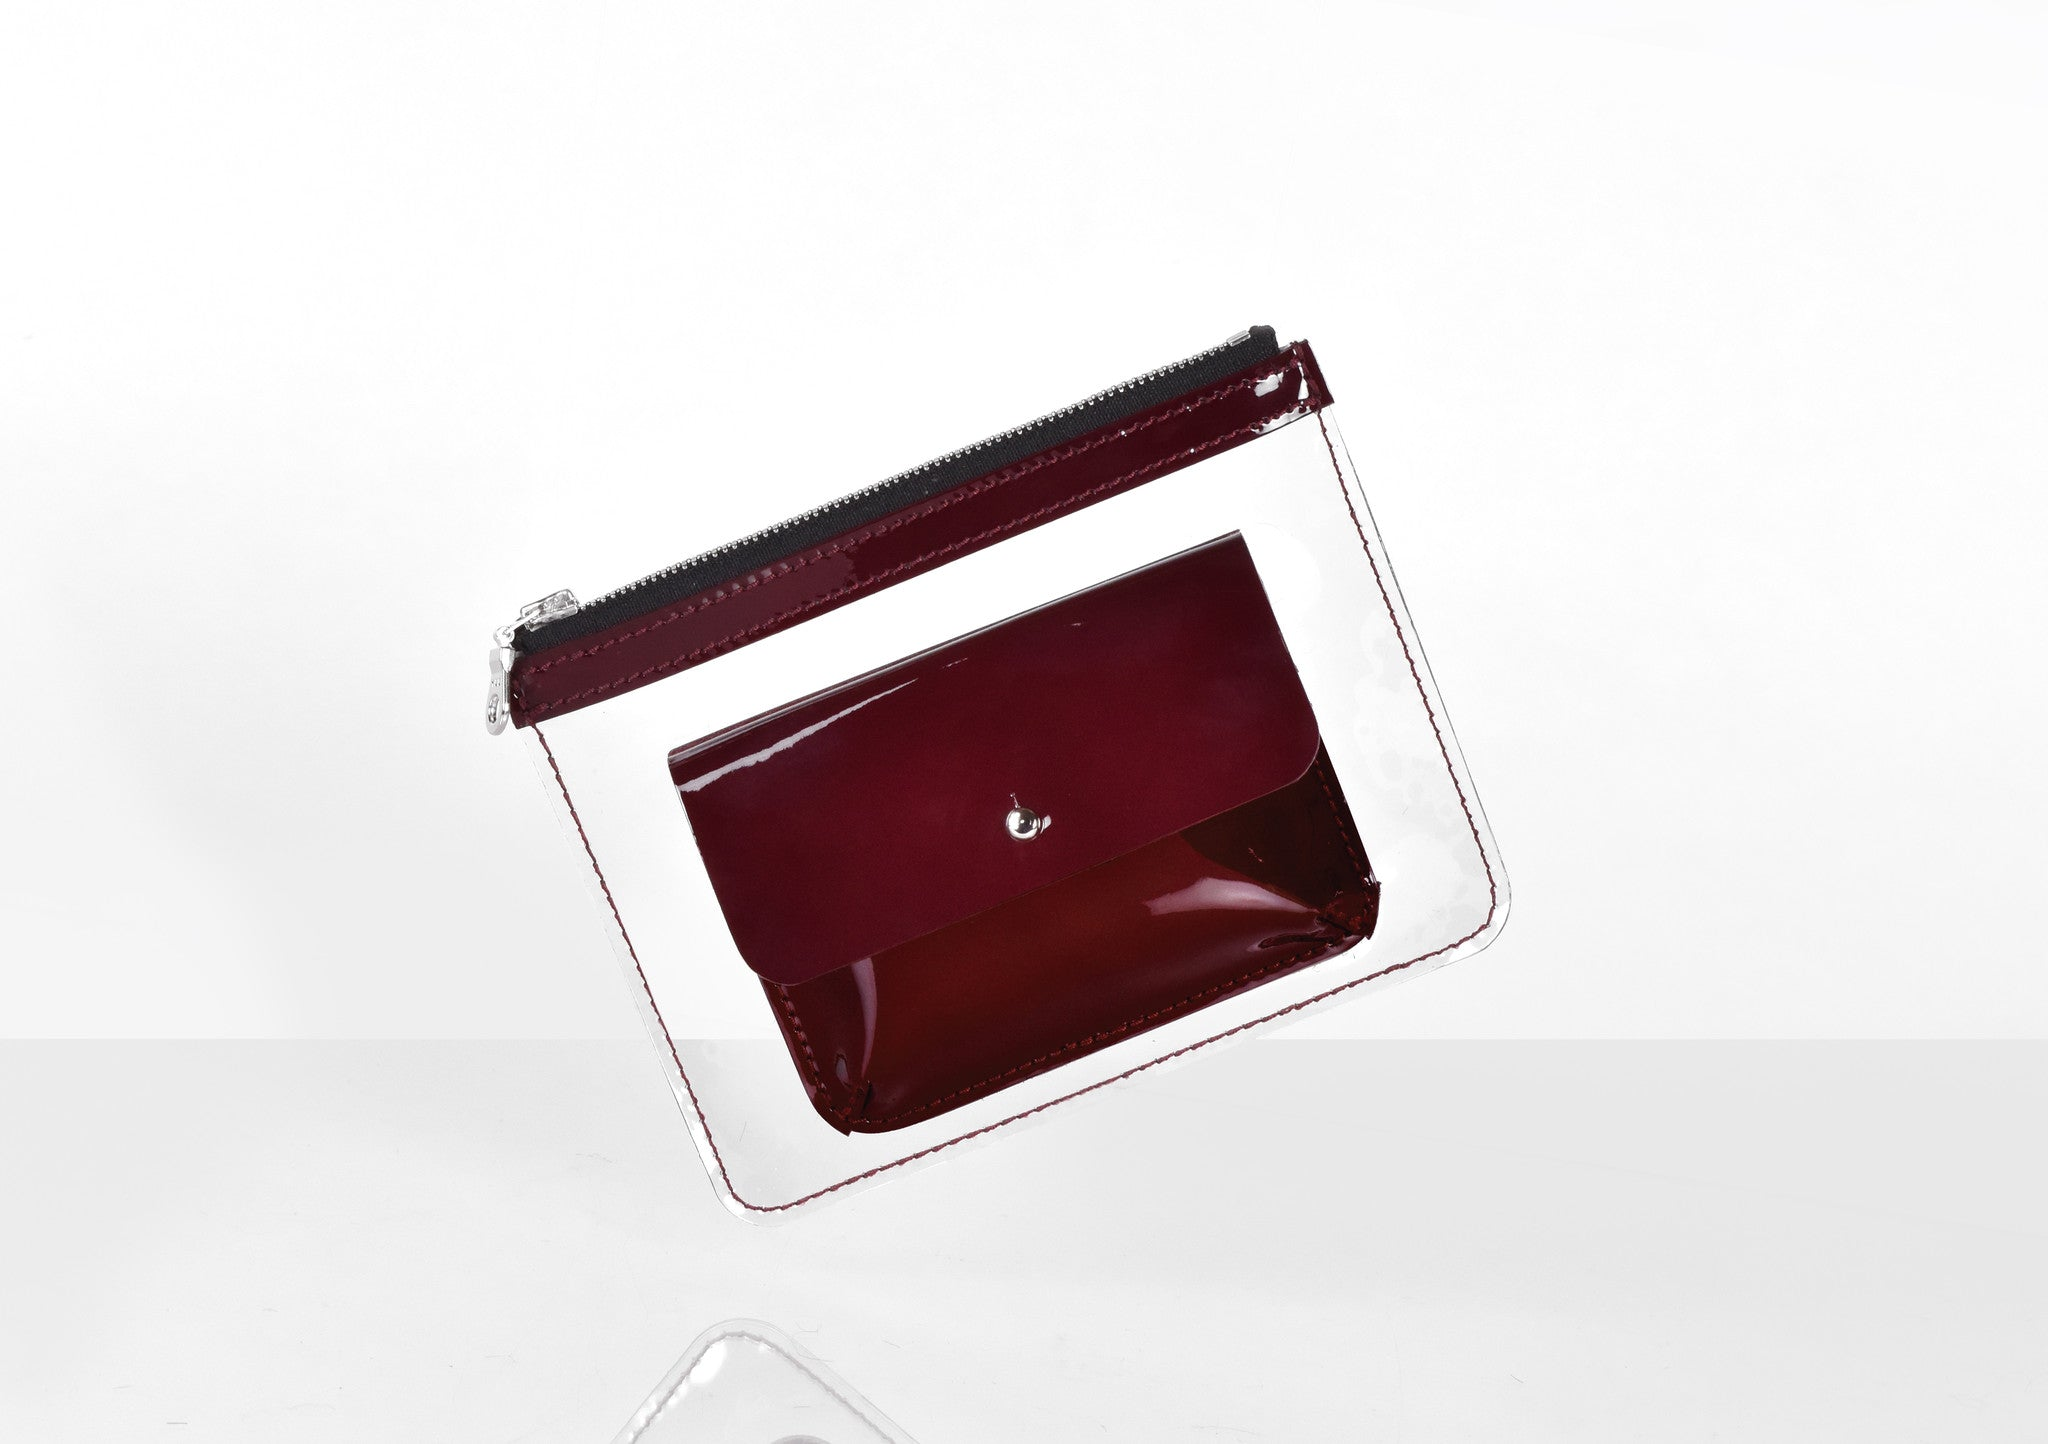 Barnett Wallet dark red patent leather